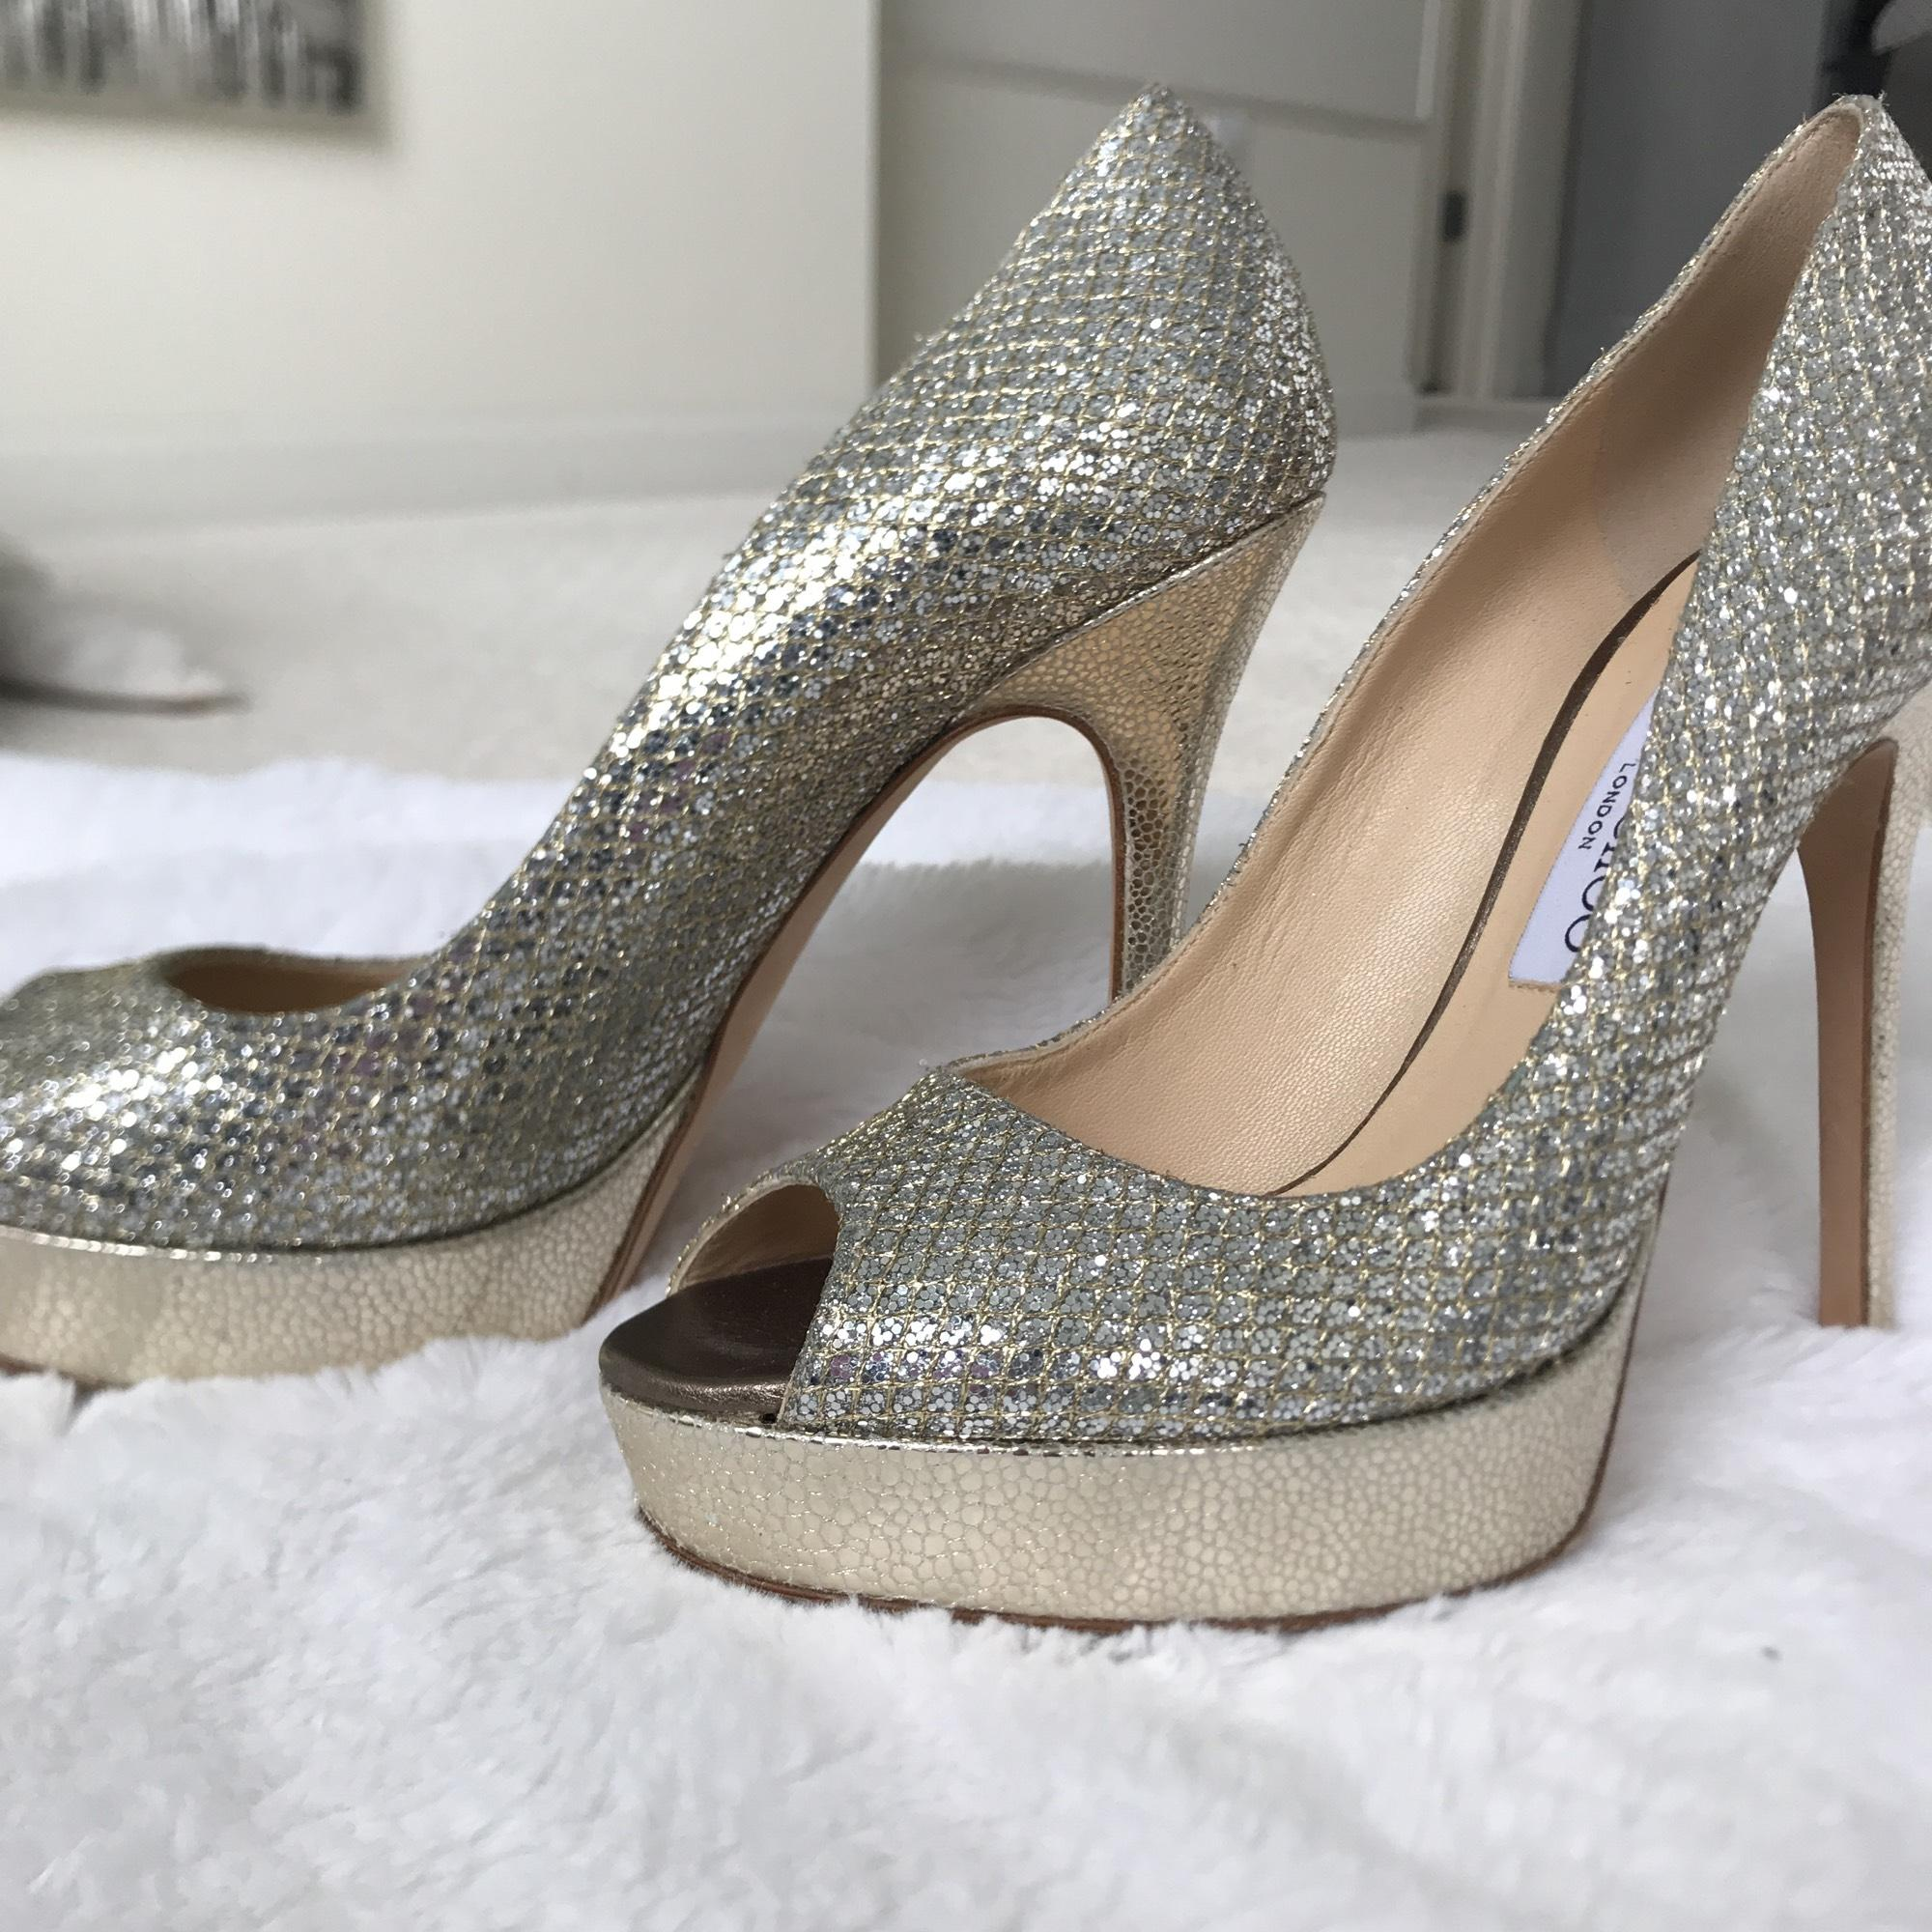 Luna 100 pumps - Metallic Jimmy Choo London soTBe6NzF